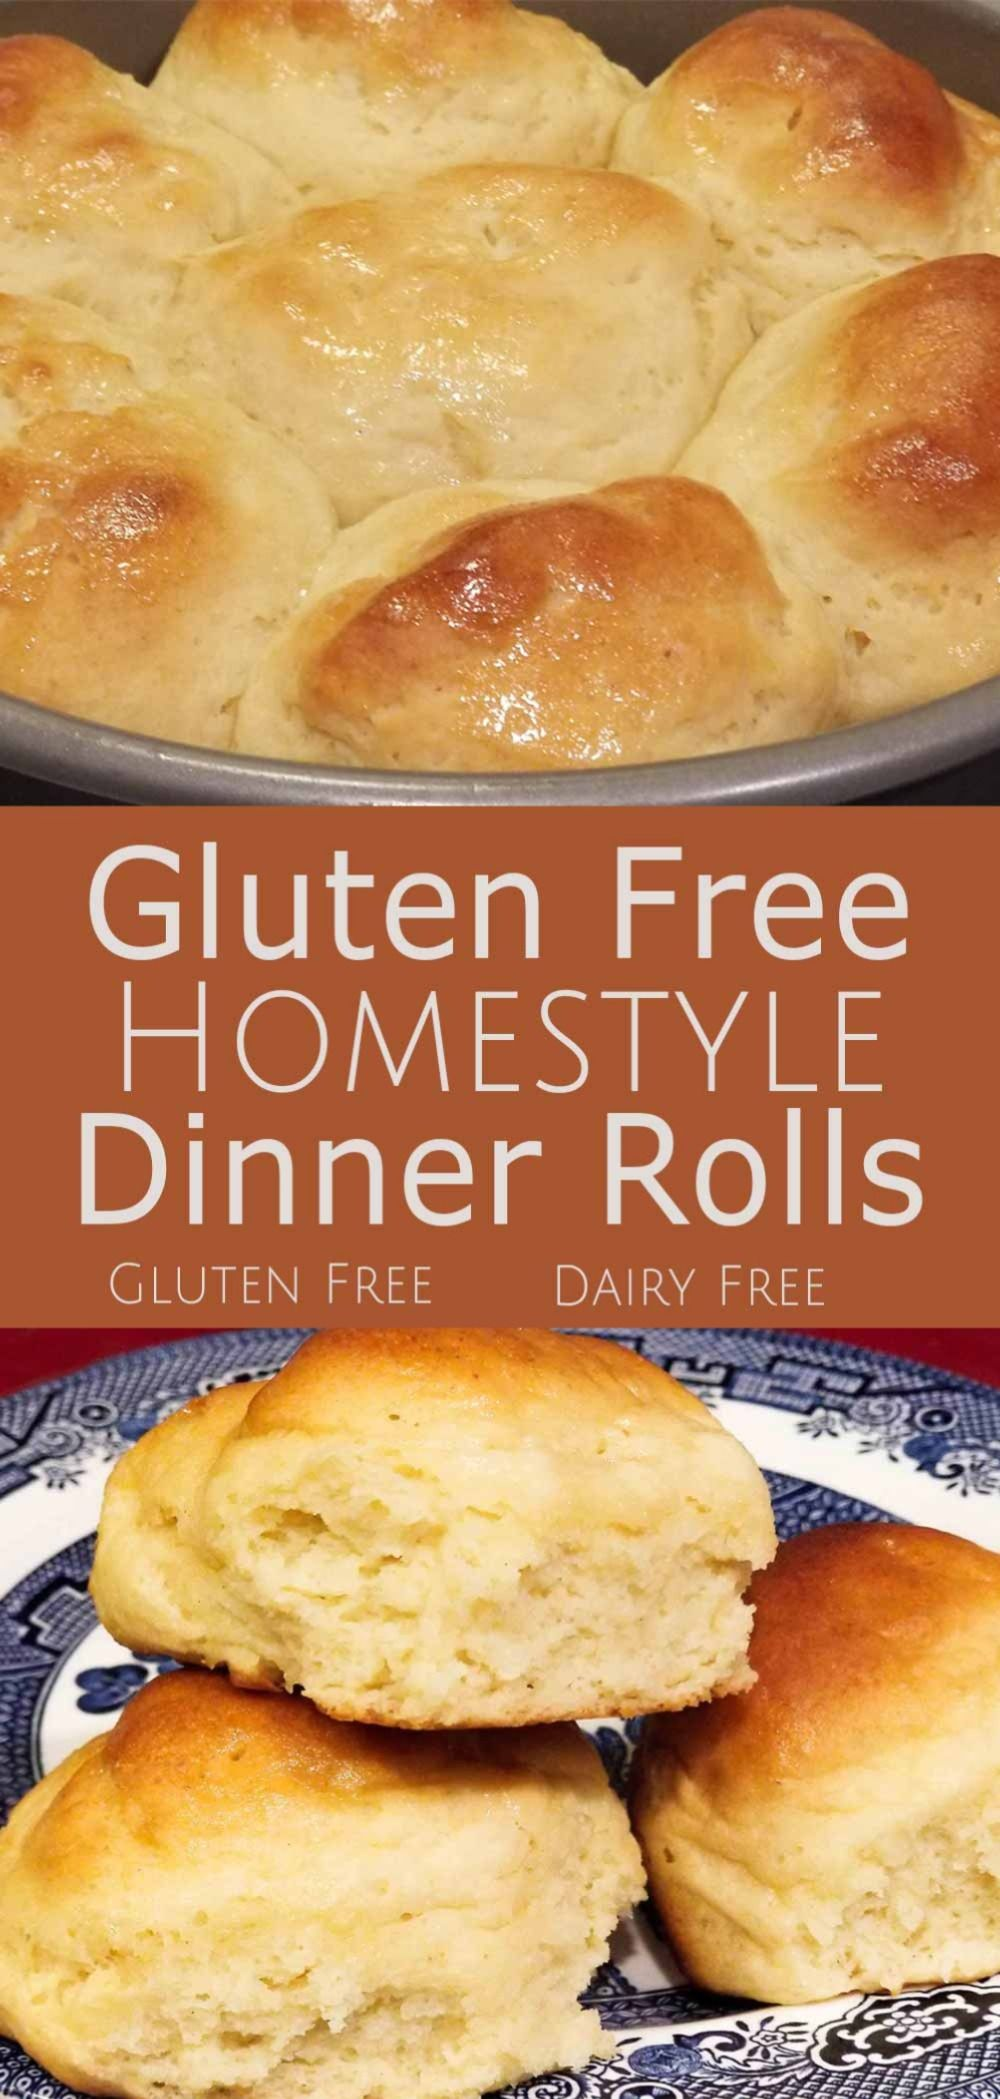 These Gluten Free Homestyle Dinner Rolls look, taste, and smell just as good as their wheat based counterparts! They are soft, fluffy and delicious! #Bread #Dinner #Fluffy #GlutenFree #Homestyle #Roll #Side